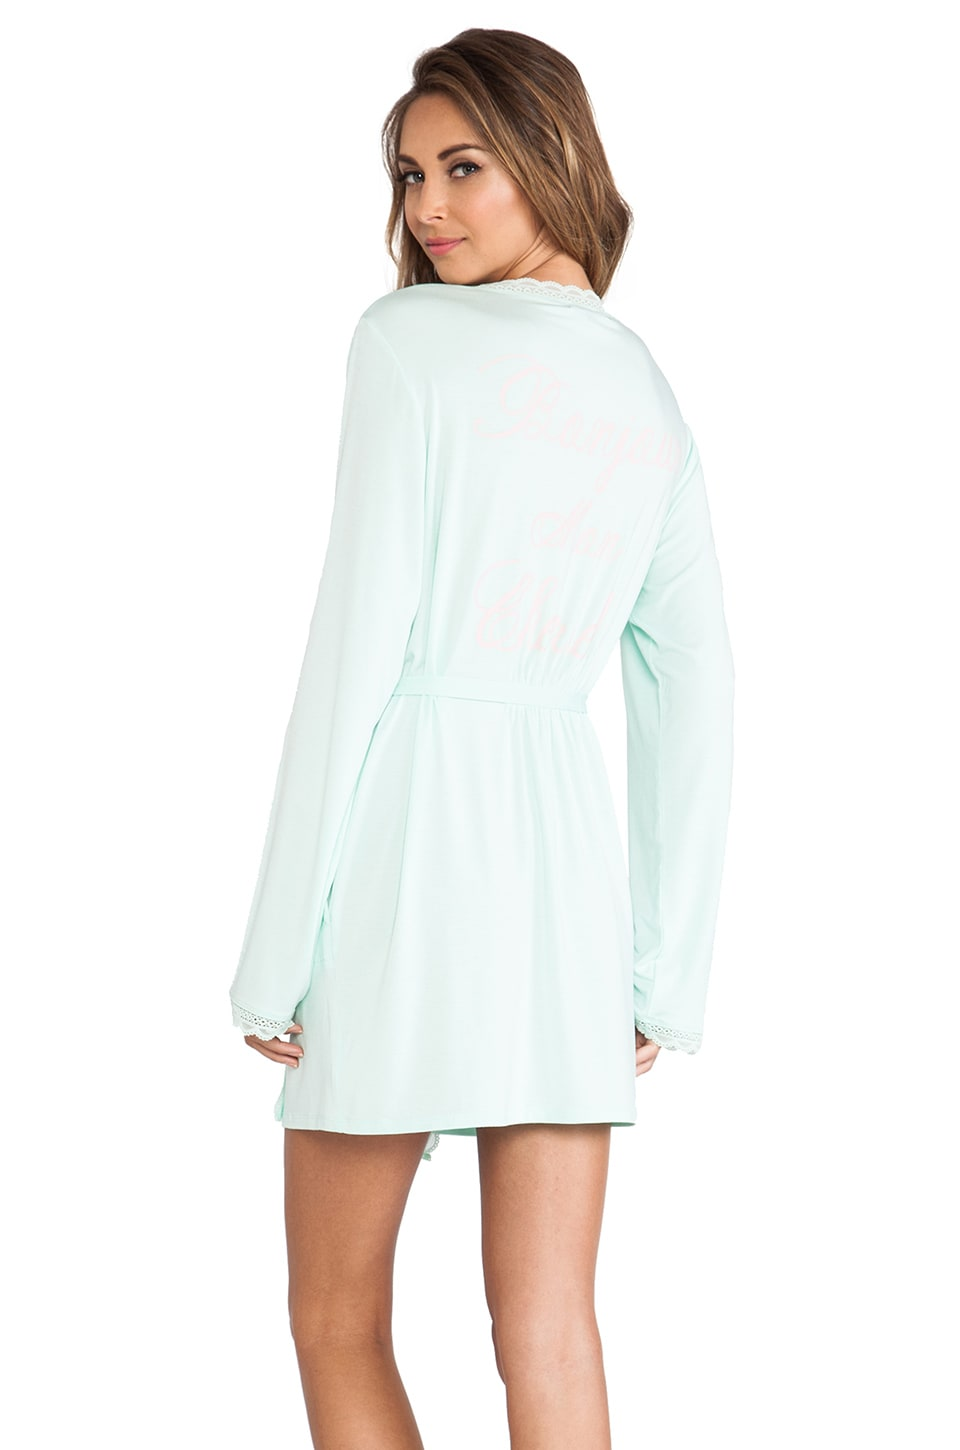 Wildfox Couture Mon Cherie Robe in Heavenly Blue